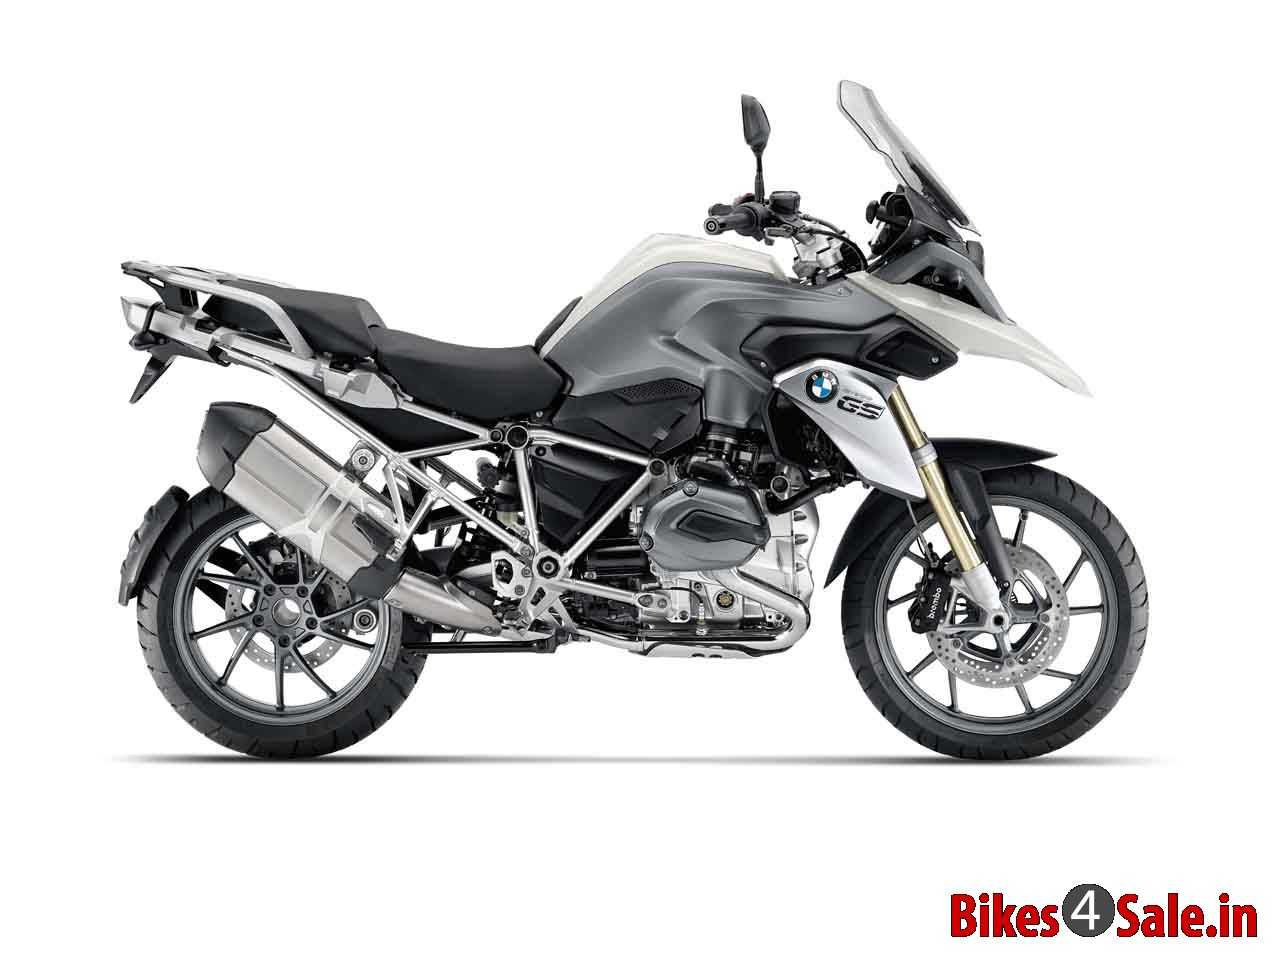 2013 bmw r 1200 gs to be showcased in london bikes4sale. Black Bedroom Furniture Sets. Home Design Ideas